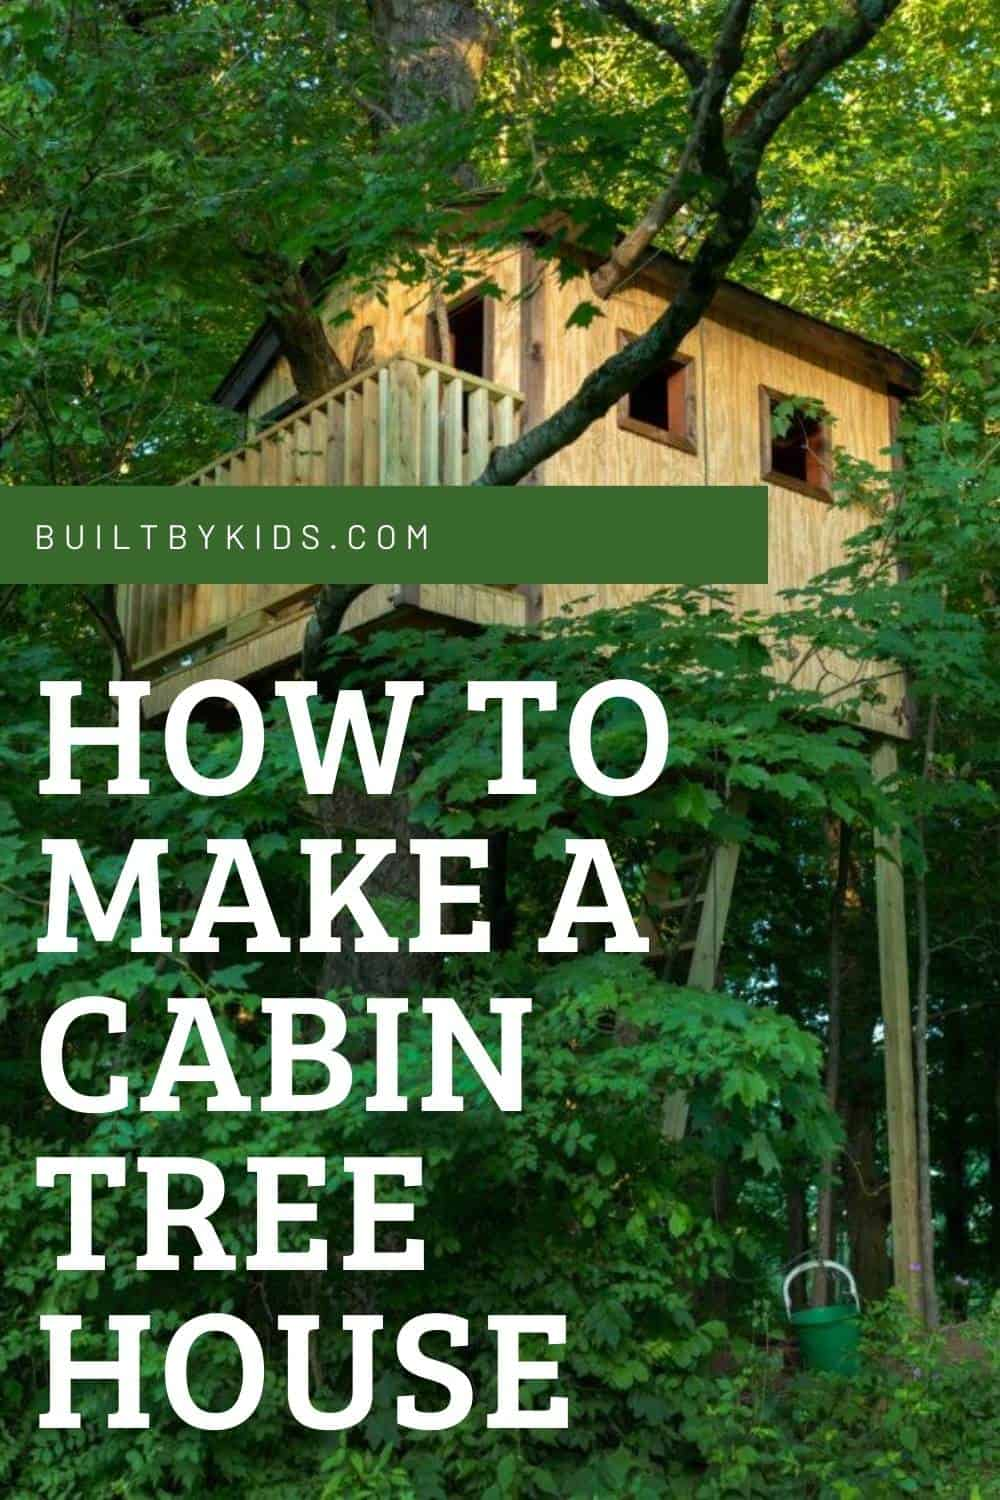 How to Make a Cabin Treehouse